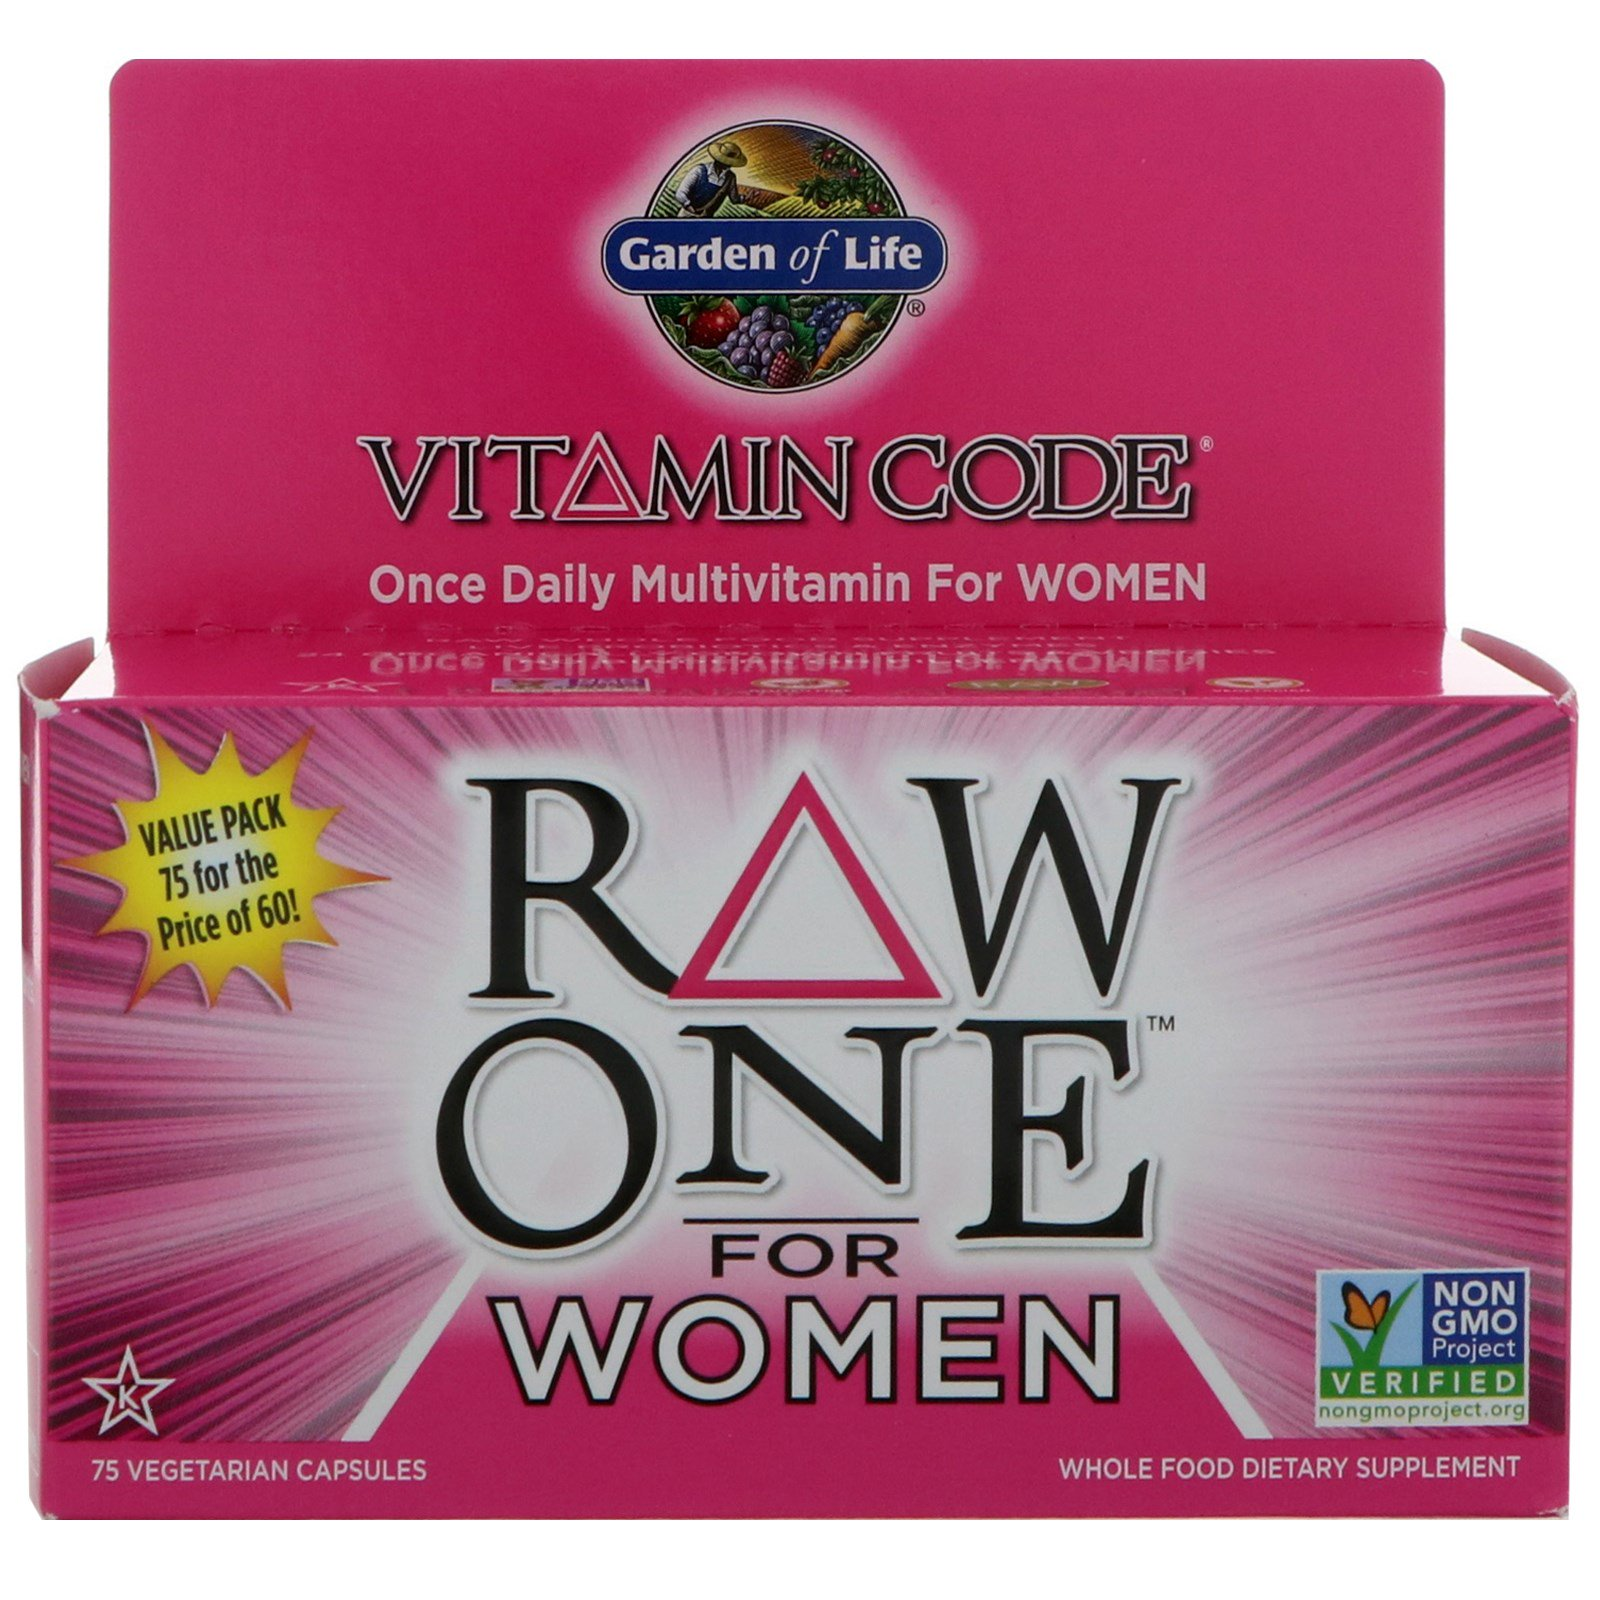 garden of life vitamin code raw one once daily multi vitamin for - Garden Of Life Multivitamin